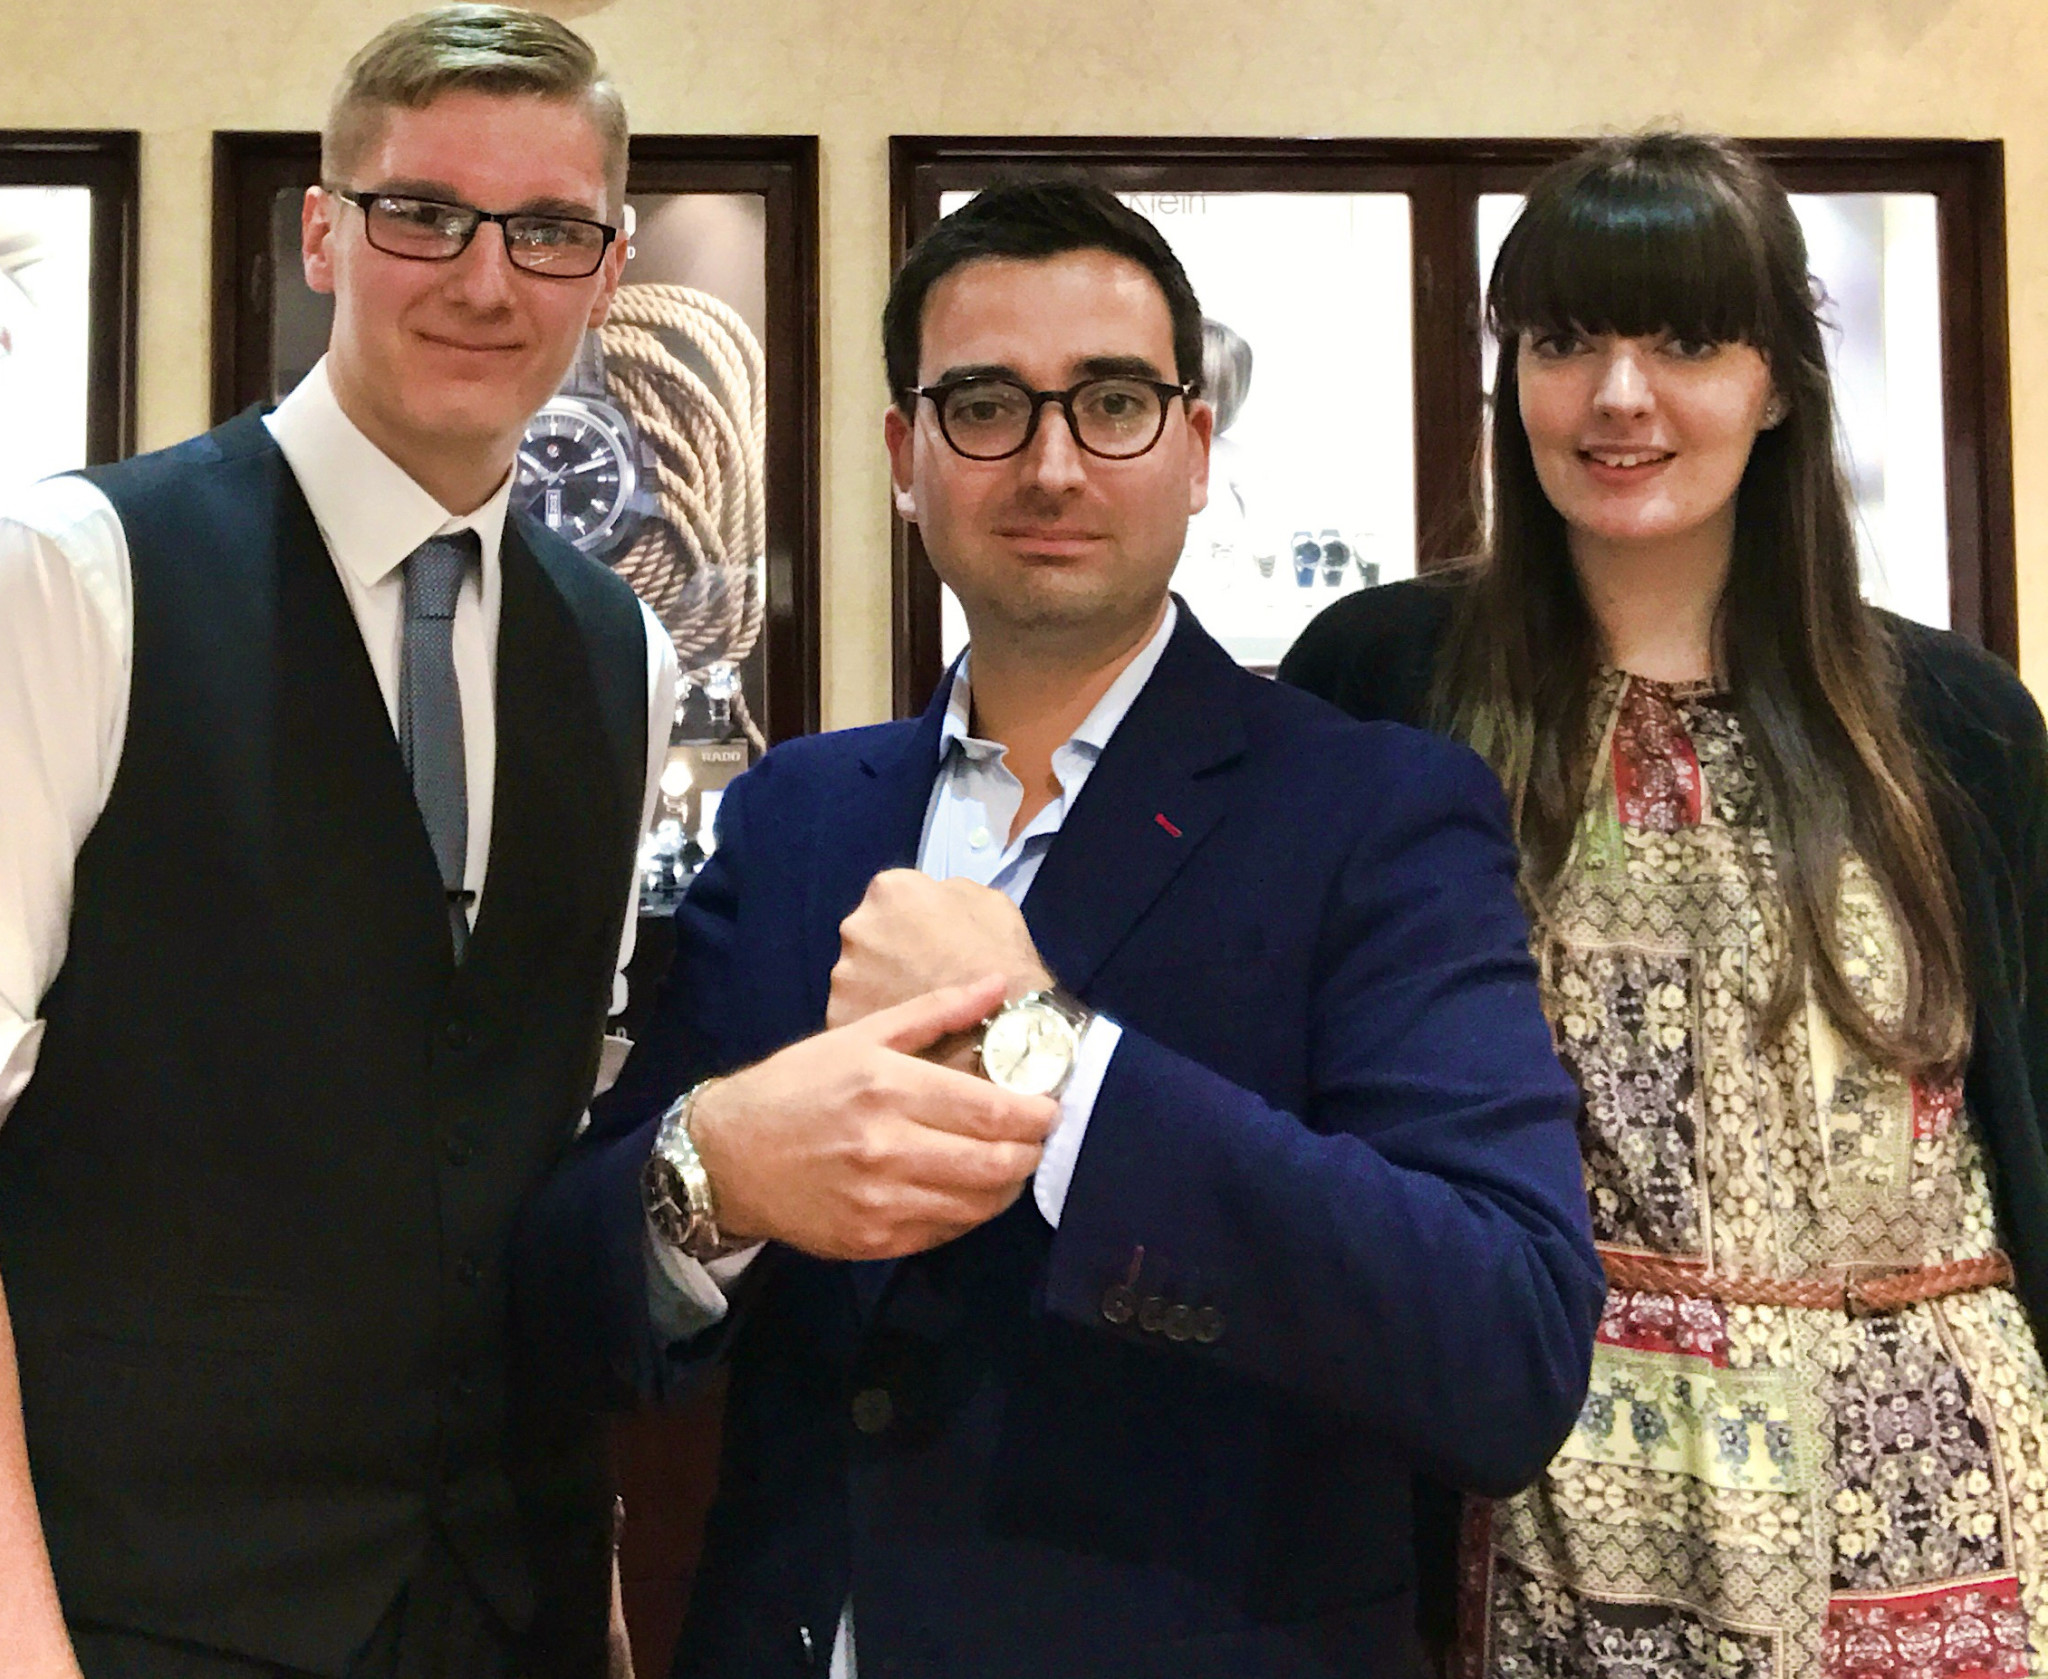 Tiago Sa-Henriques (centre) with Dipples team Jack and Georgina take their own selfie using the Kronaby watch connected to a smartphone.